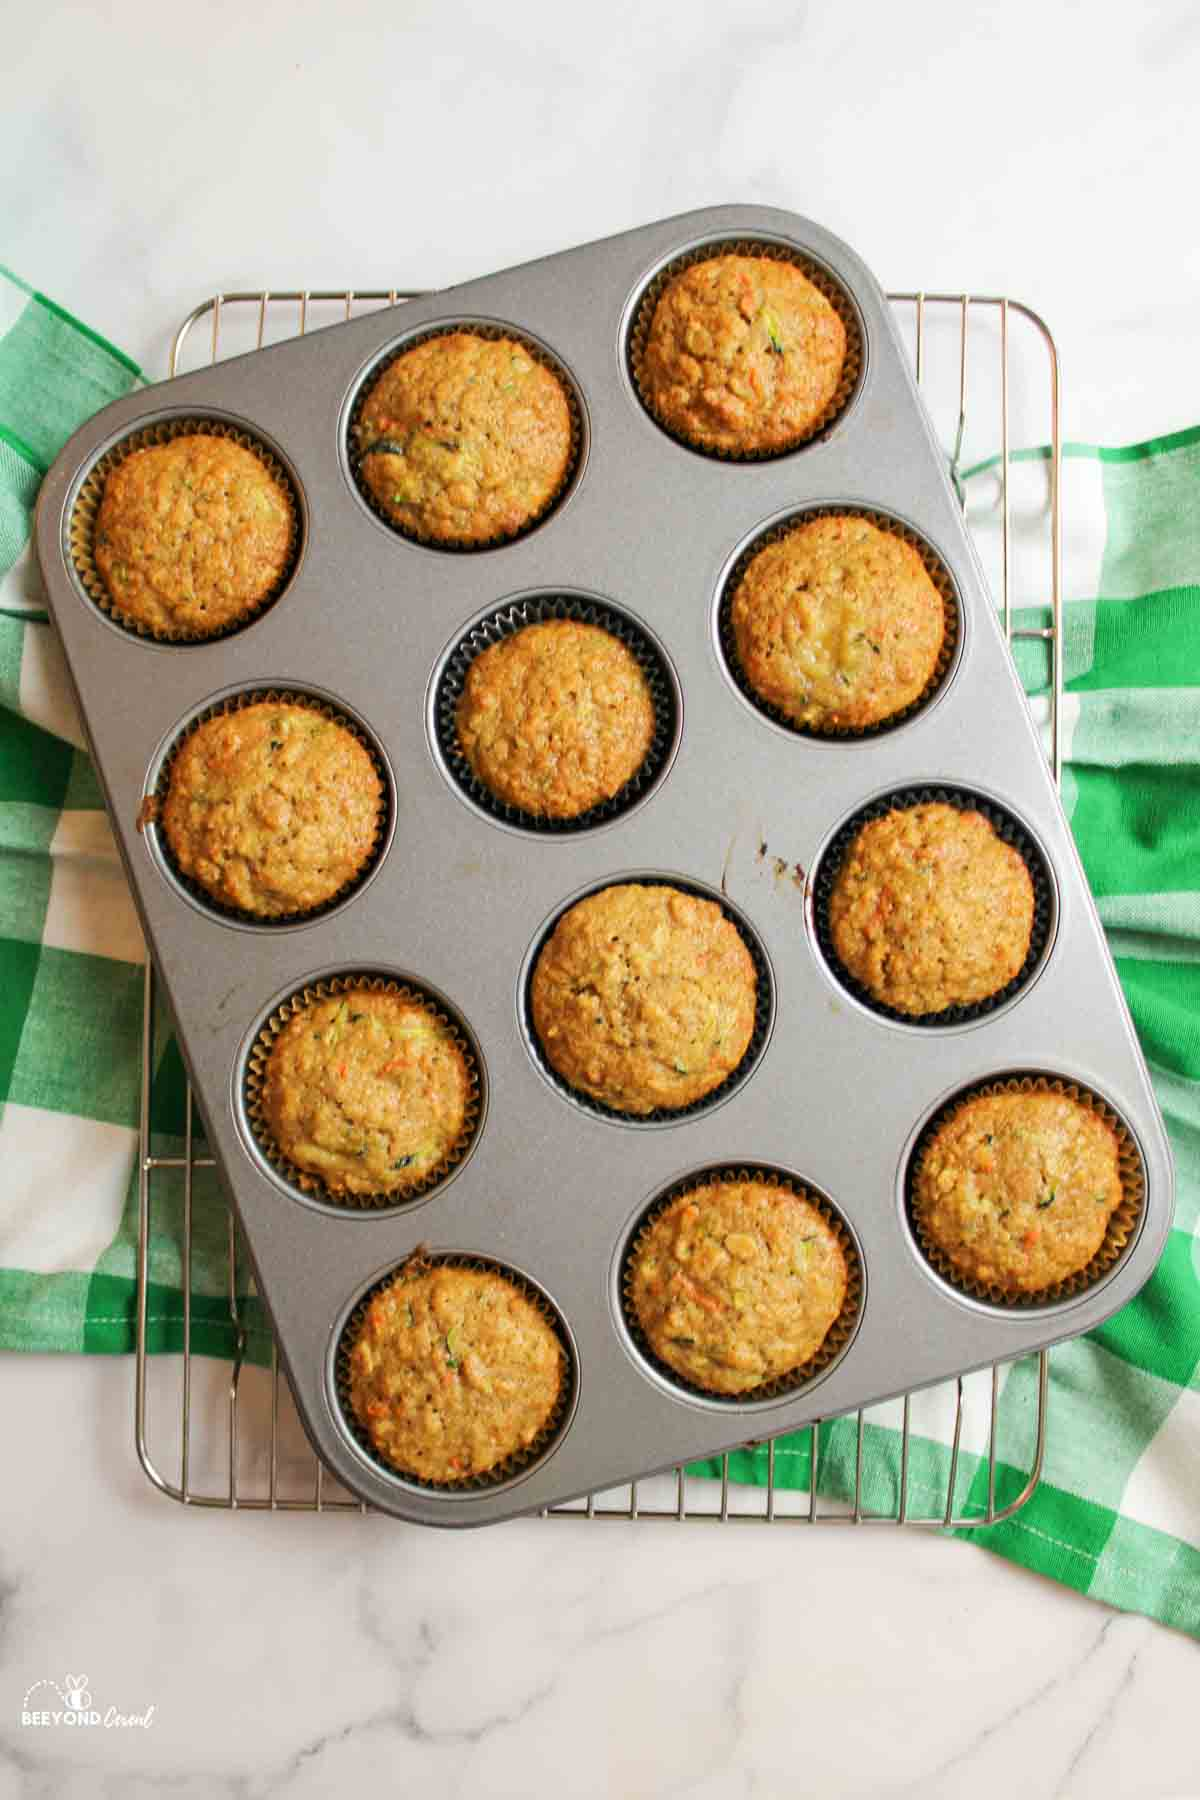 zucchini carrot oatmeal muffins in a baking tray on a wire rack and towel